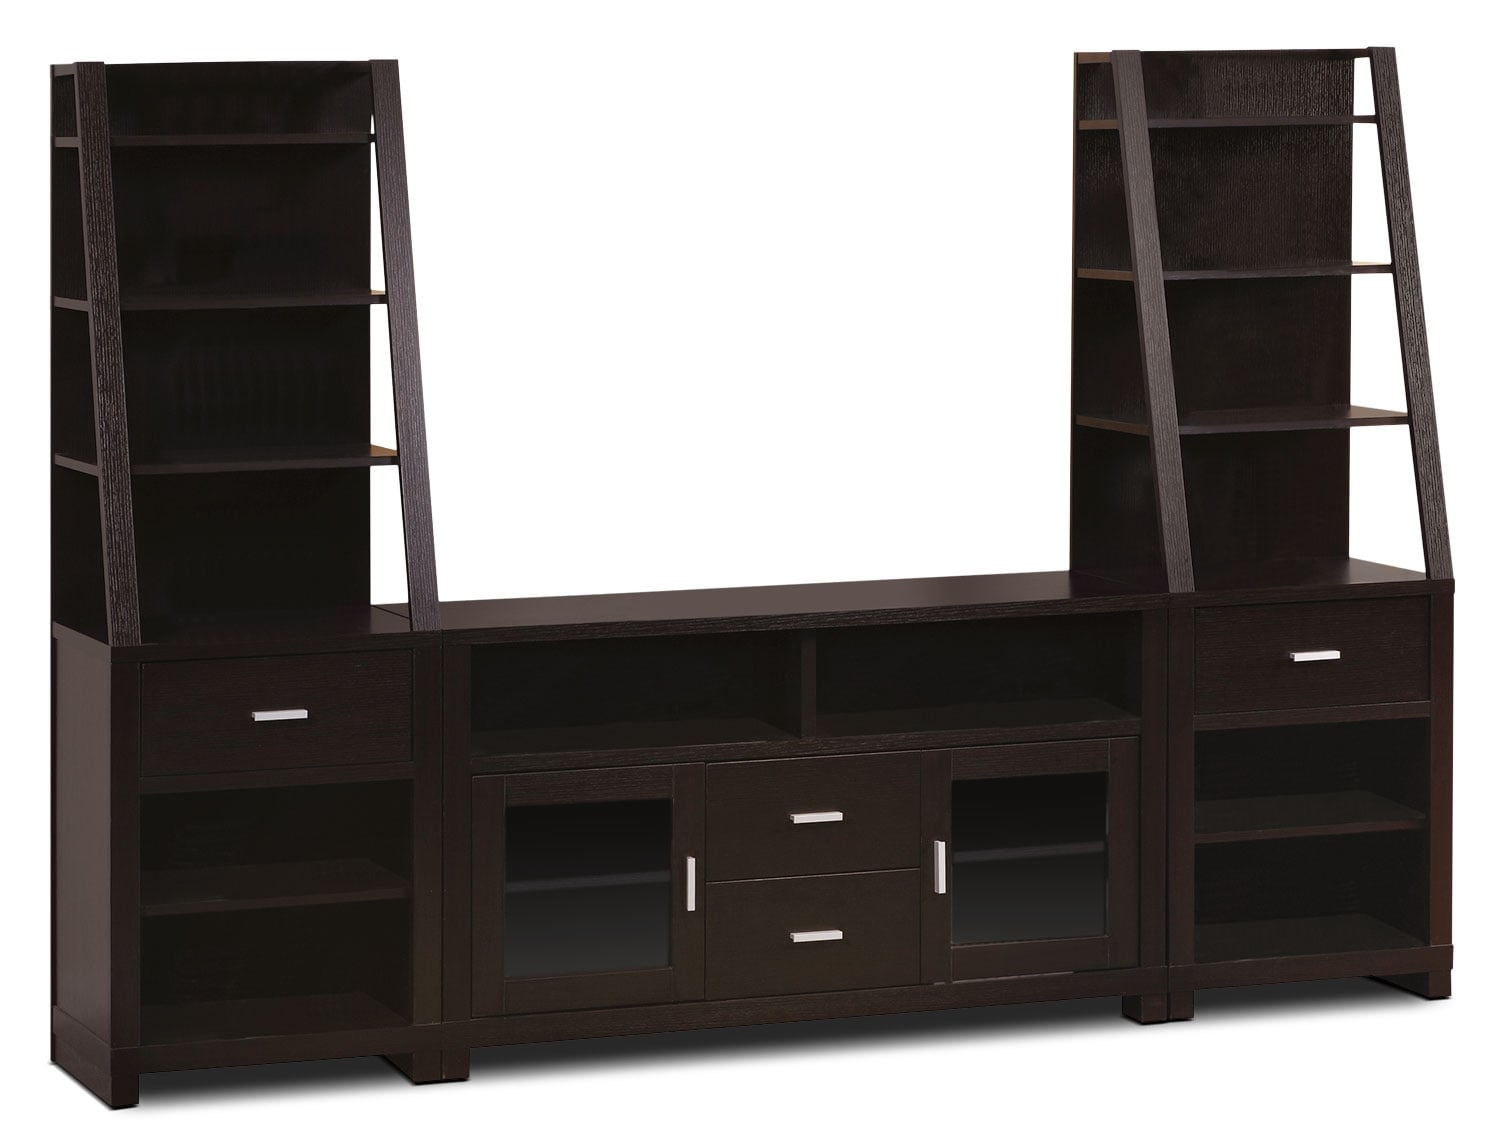 "Kensington 3-Piece Entertainment Centre with 47"" TV Opening"